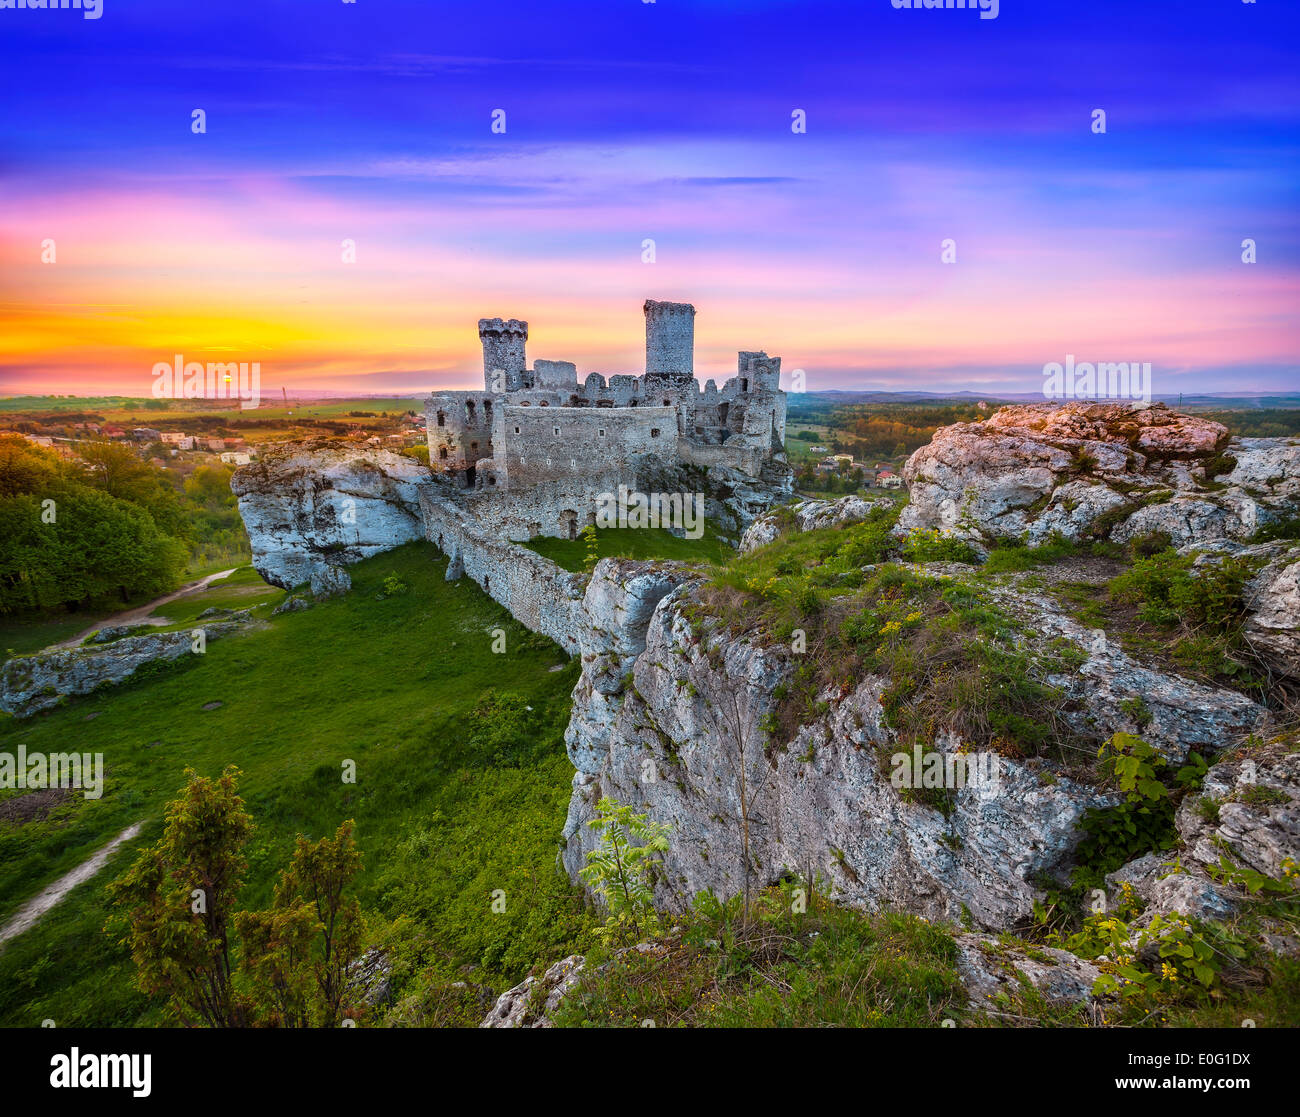 Beautiful sunset over Ogrodzieniec castle, Poland. - Stock Image